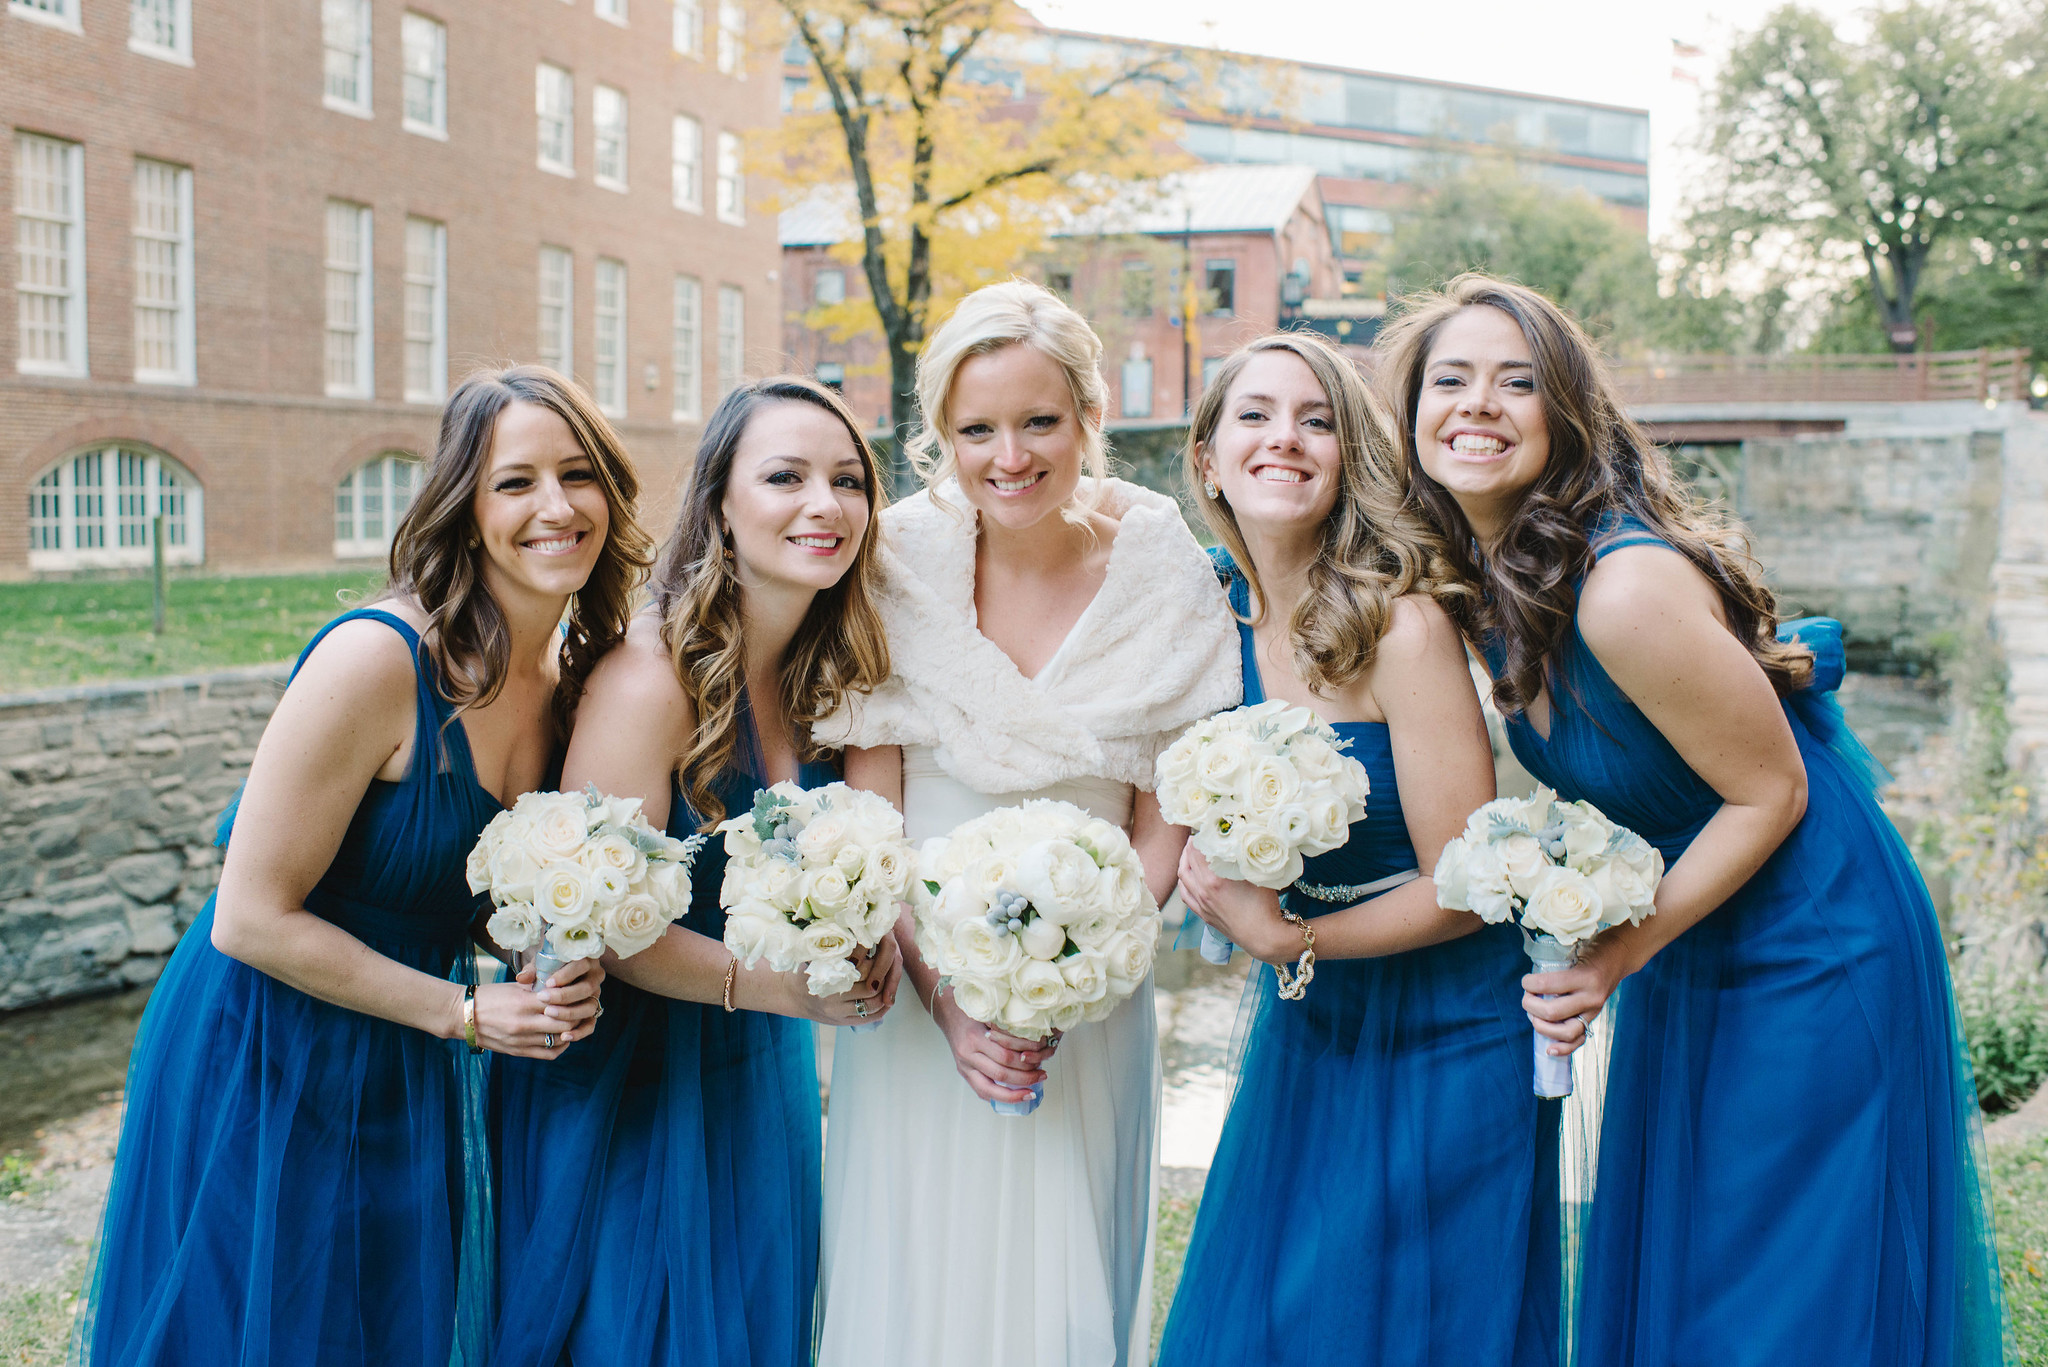 View More: http://reneehollingshead.pass.us/gavelekwedding